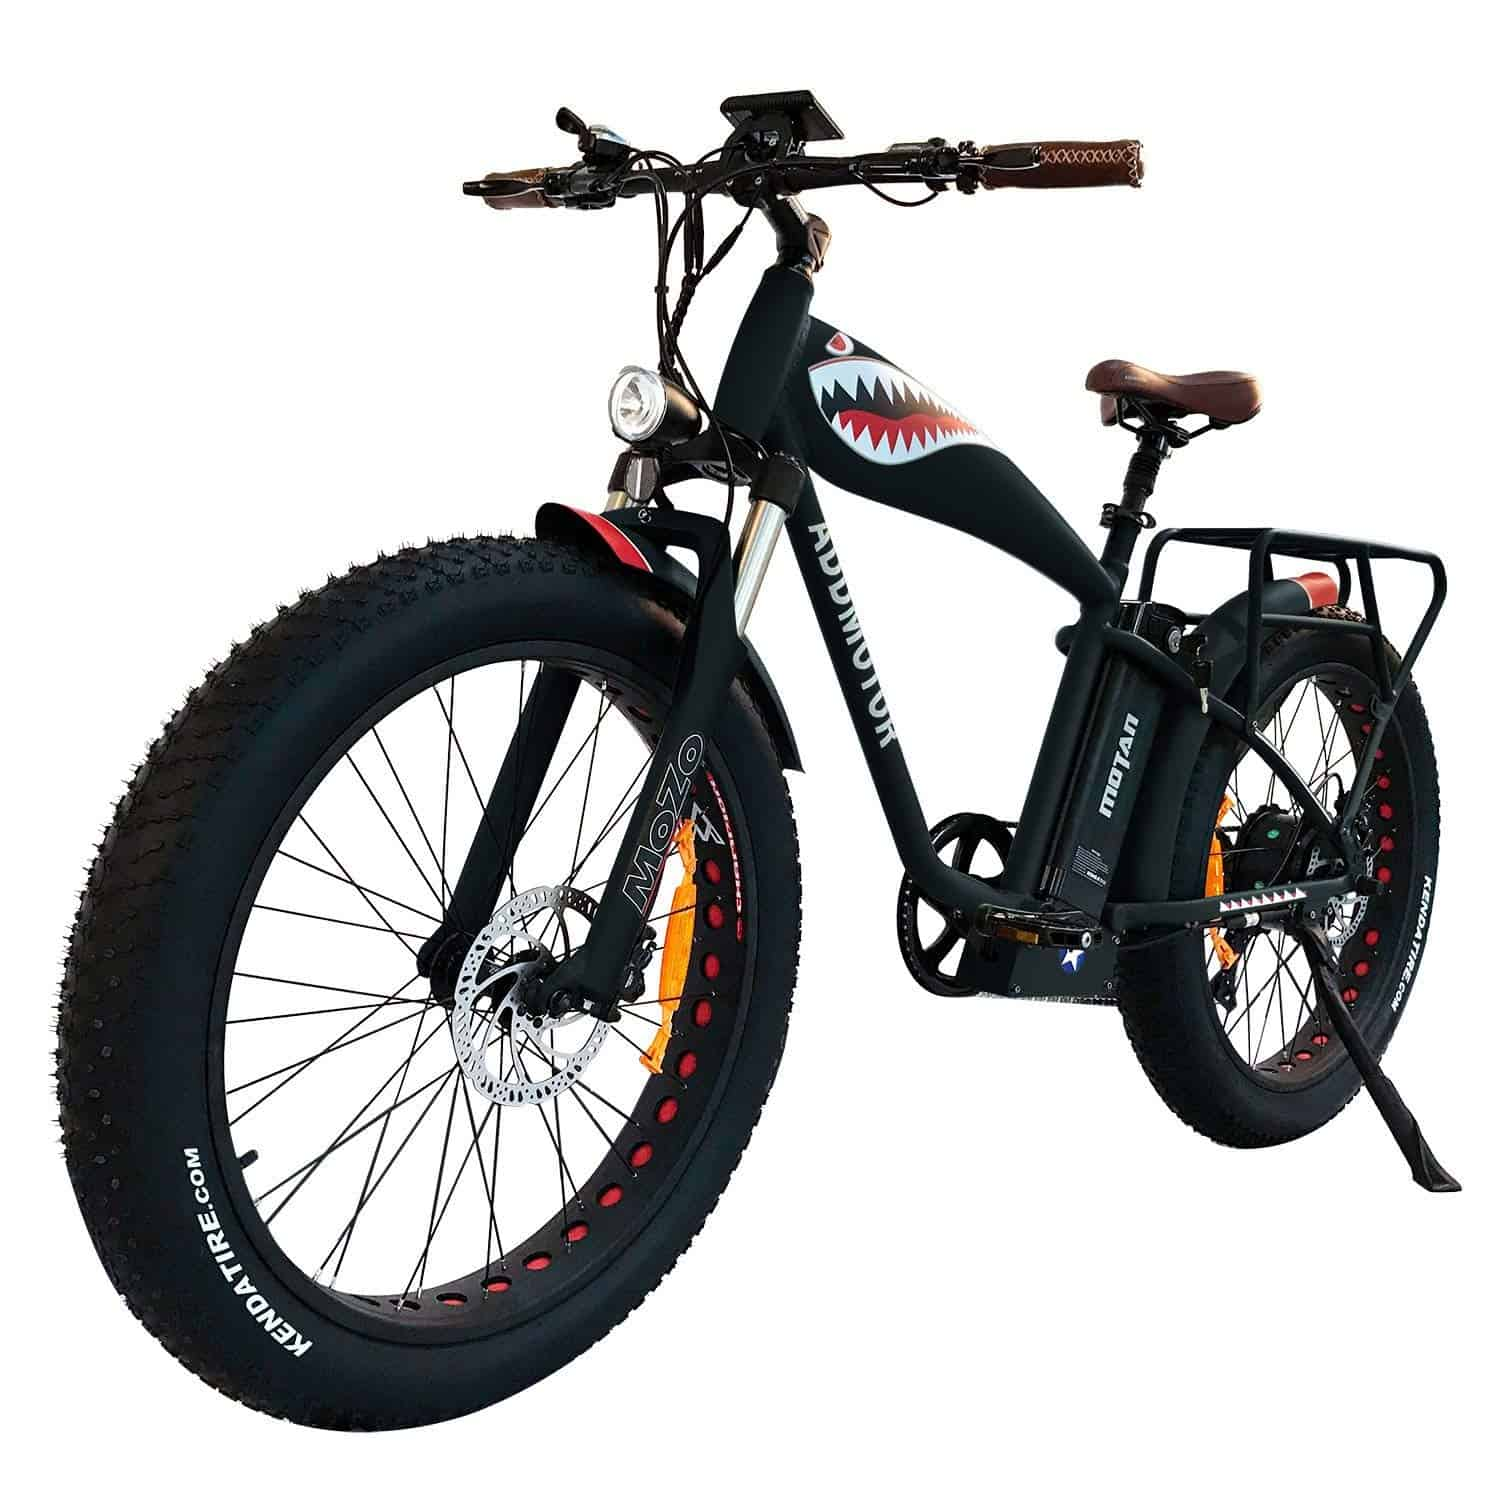 Addmotor Electric bicycle - the motan